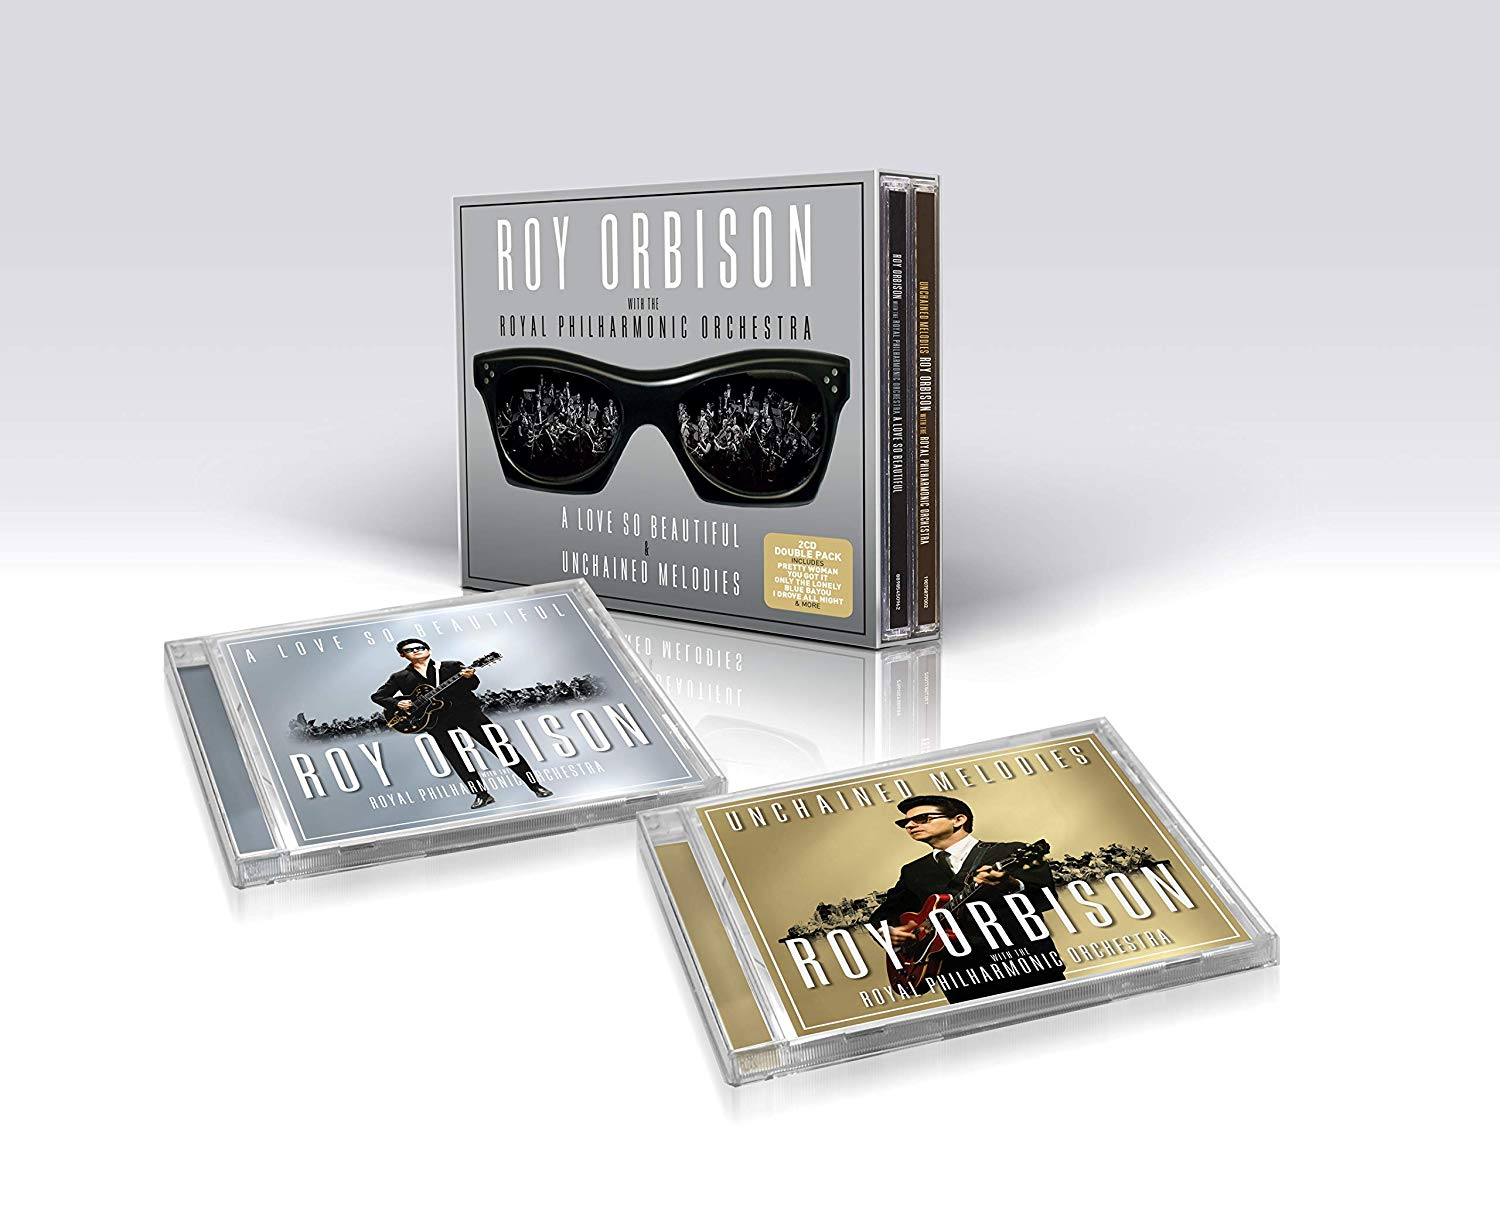 b438ca6775 A Love So Beautiful / Unchained Melodies CD Bundle · Roy Orbison ...